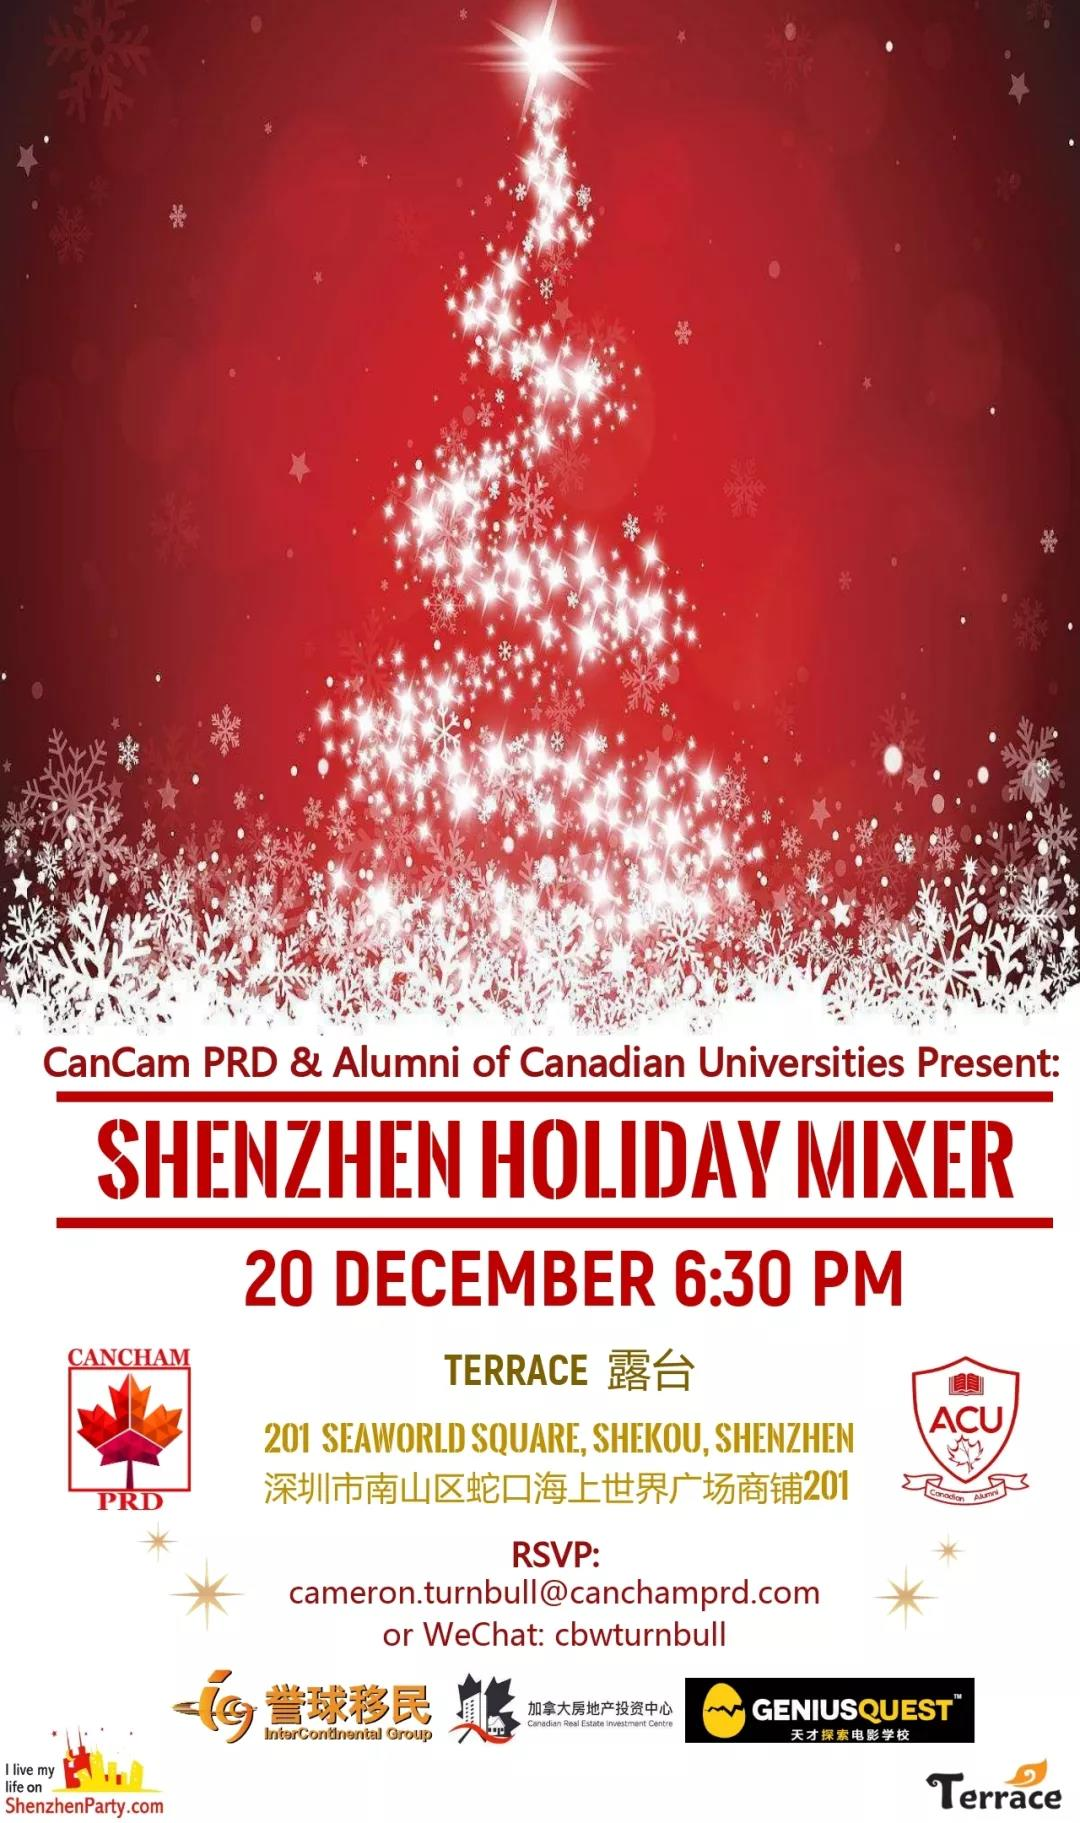 Shenzhen Holiday Mixer Poster.jpg